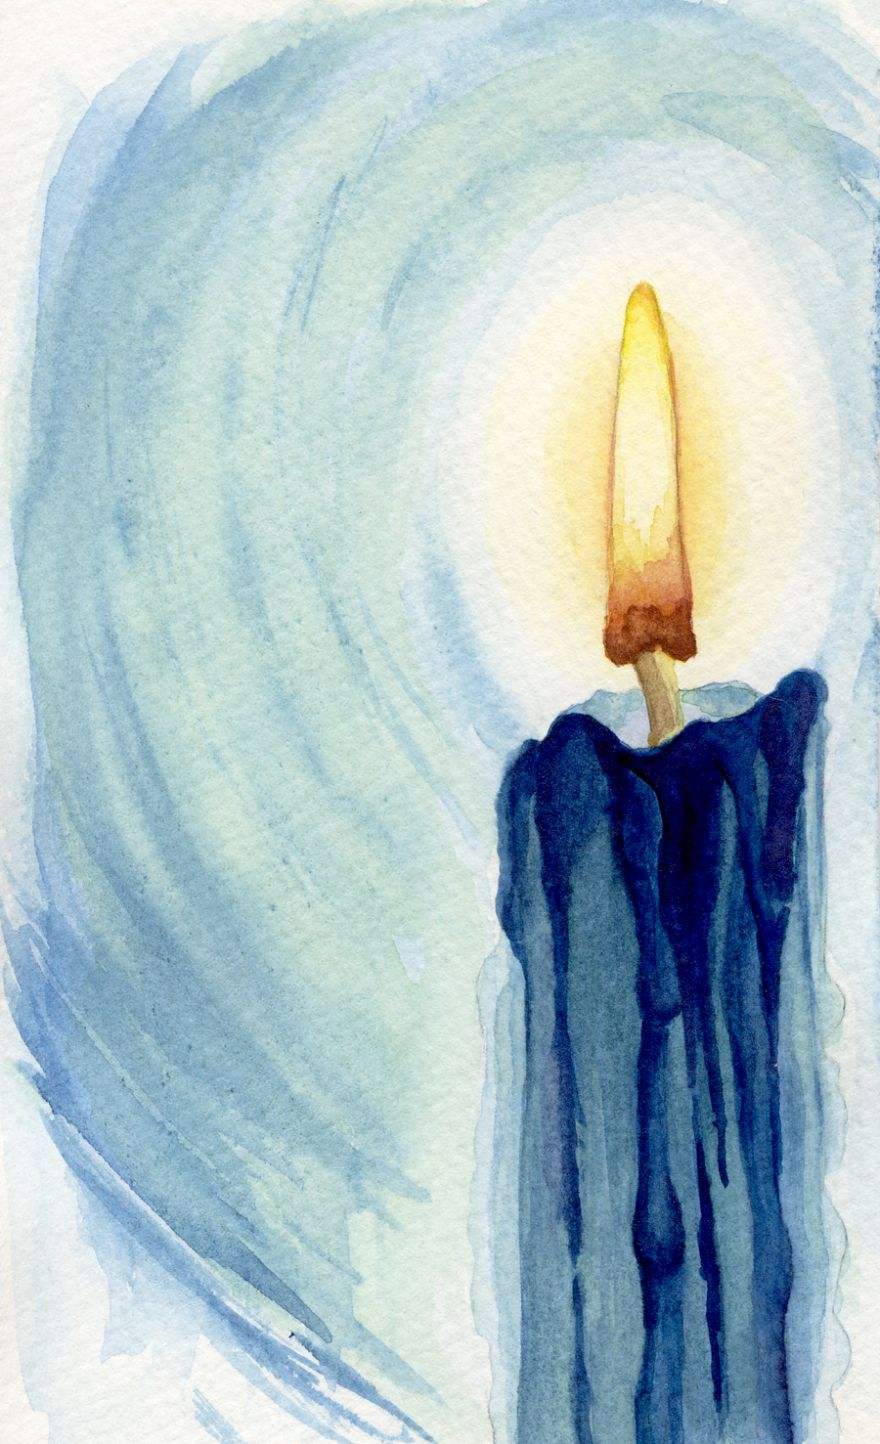 watercolor-candle-8.jpg